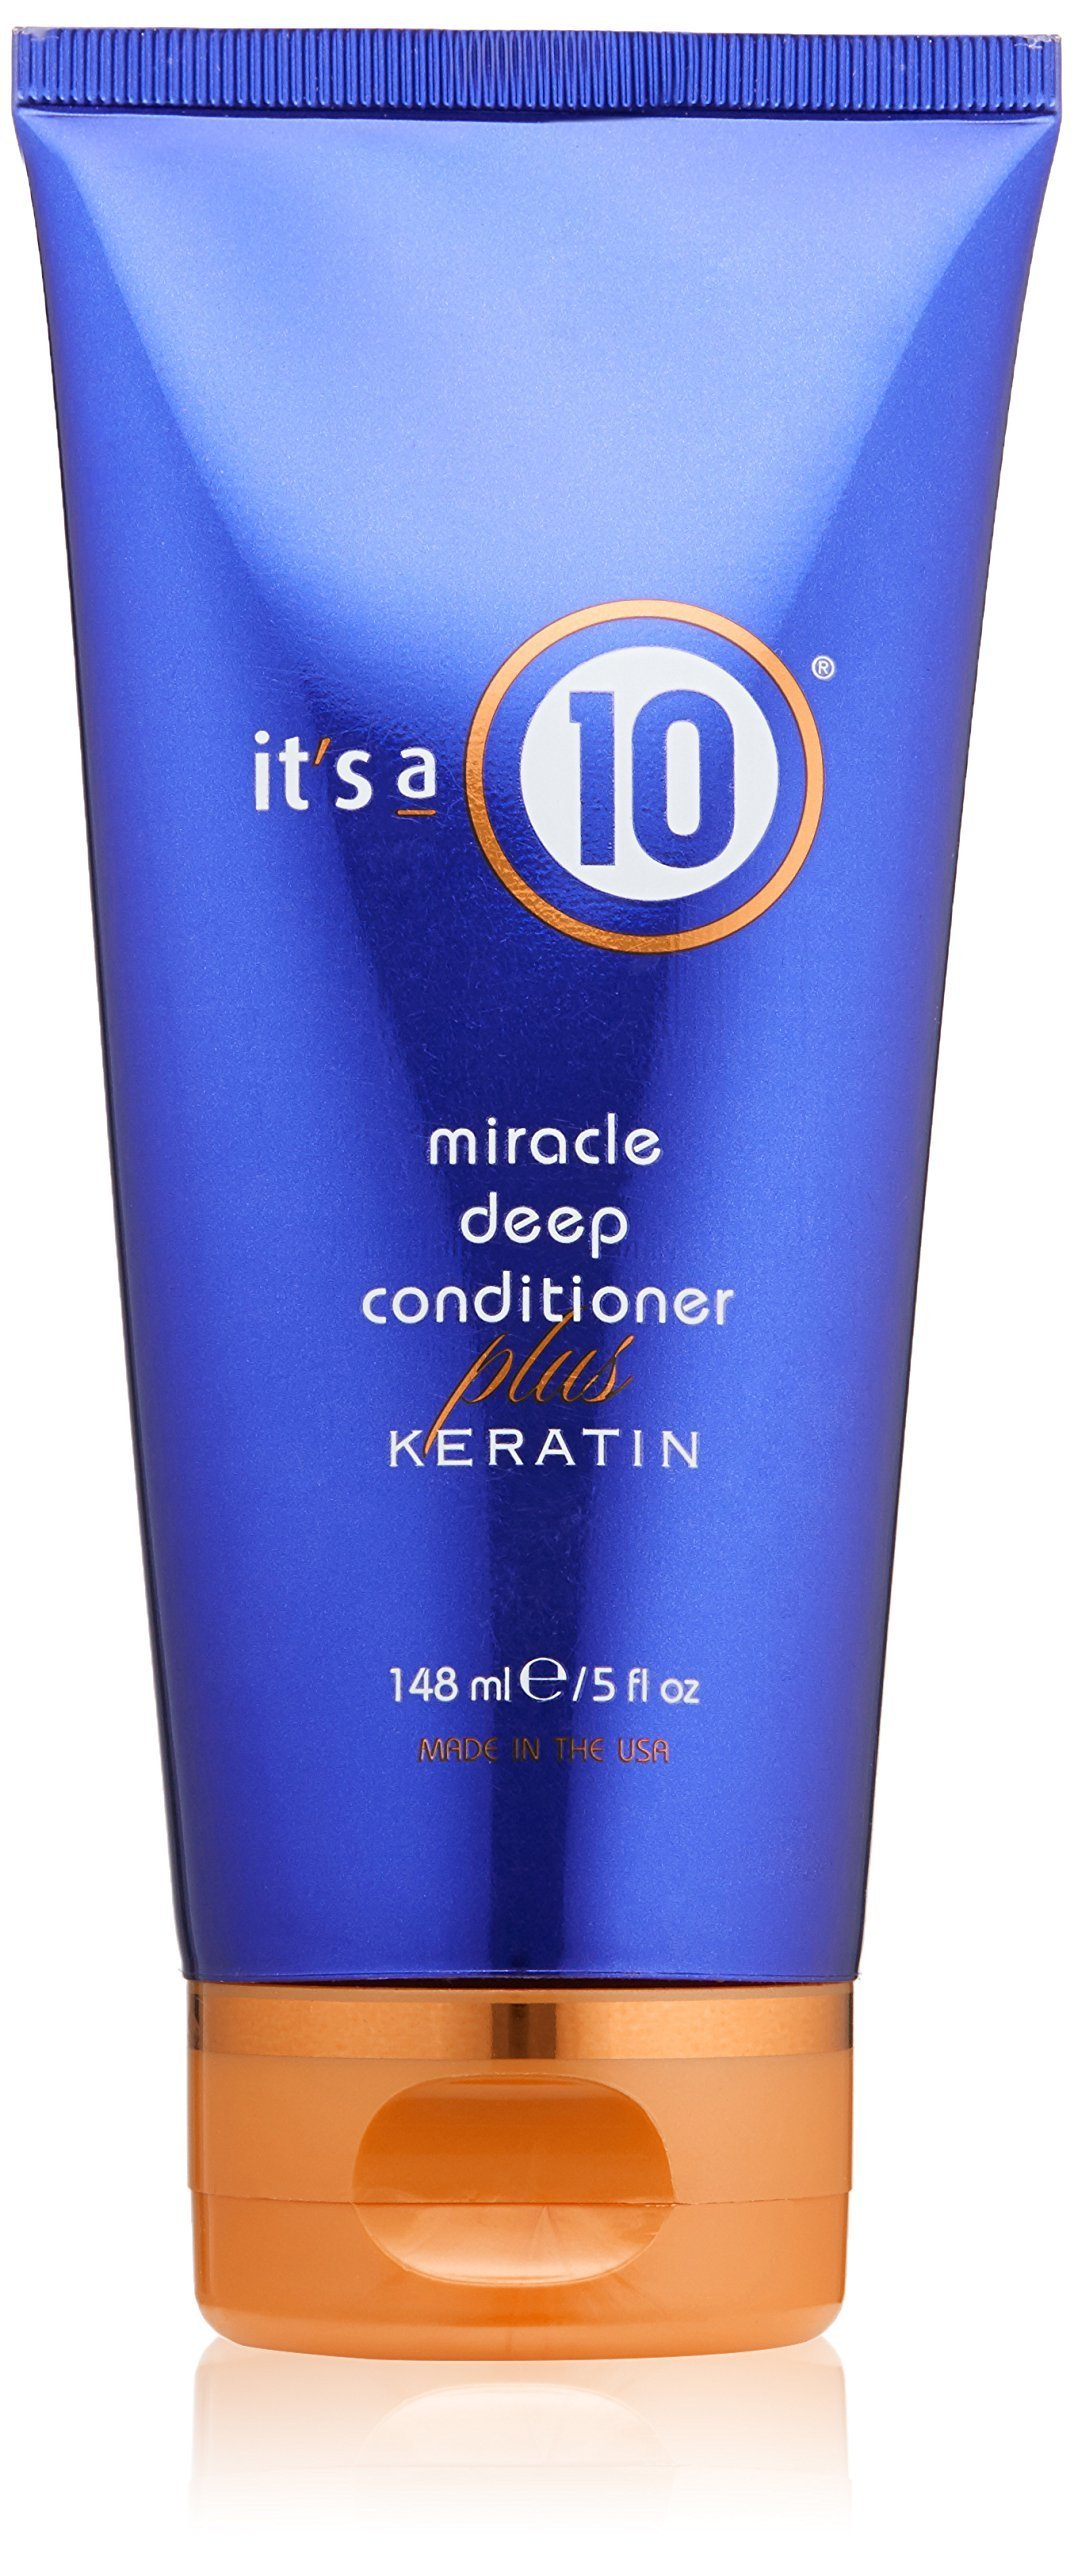 It's a 10 Miracle Deep Conditioner Plus Keratin, 5 oz by It's a 10 Haircare